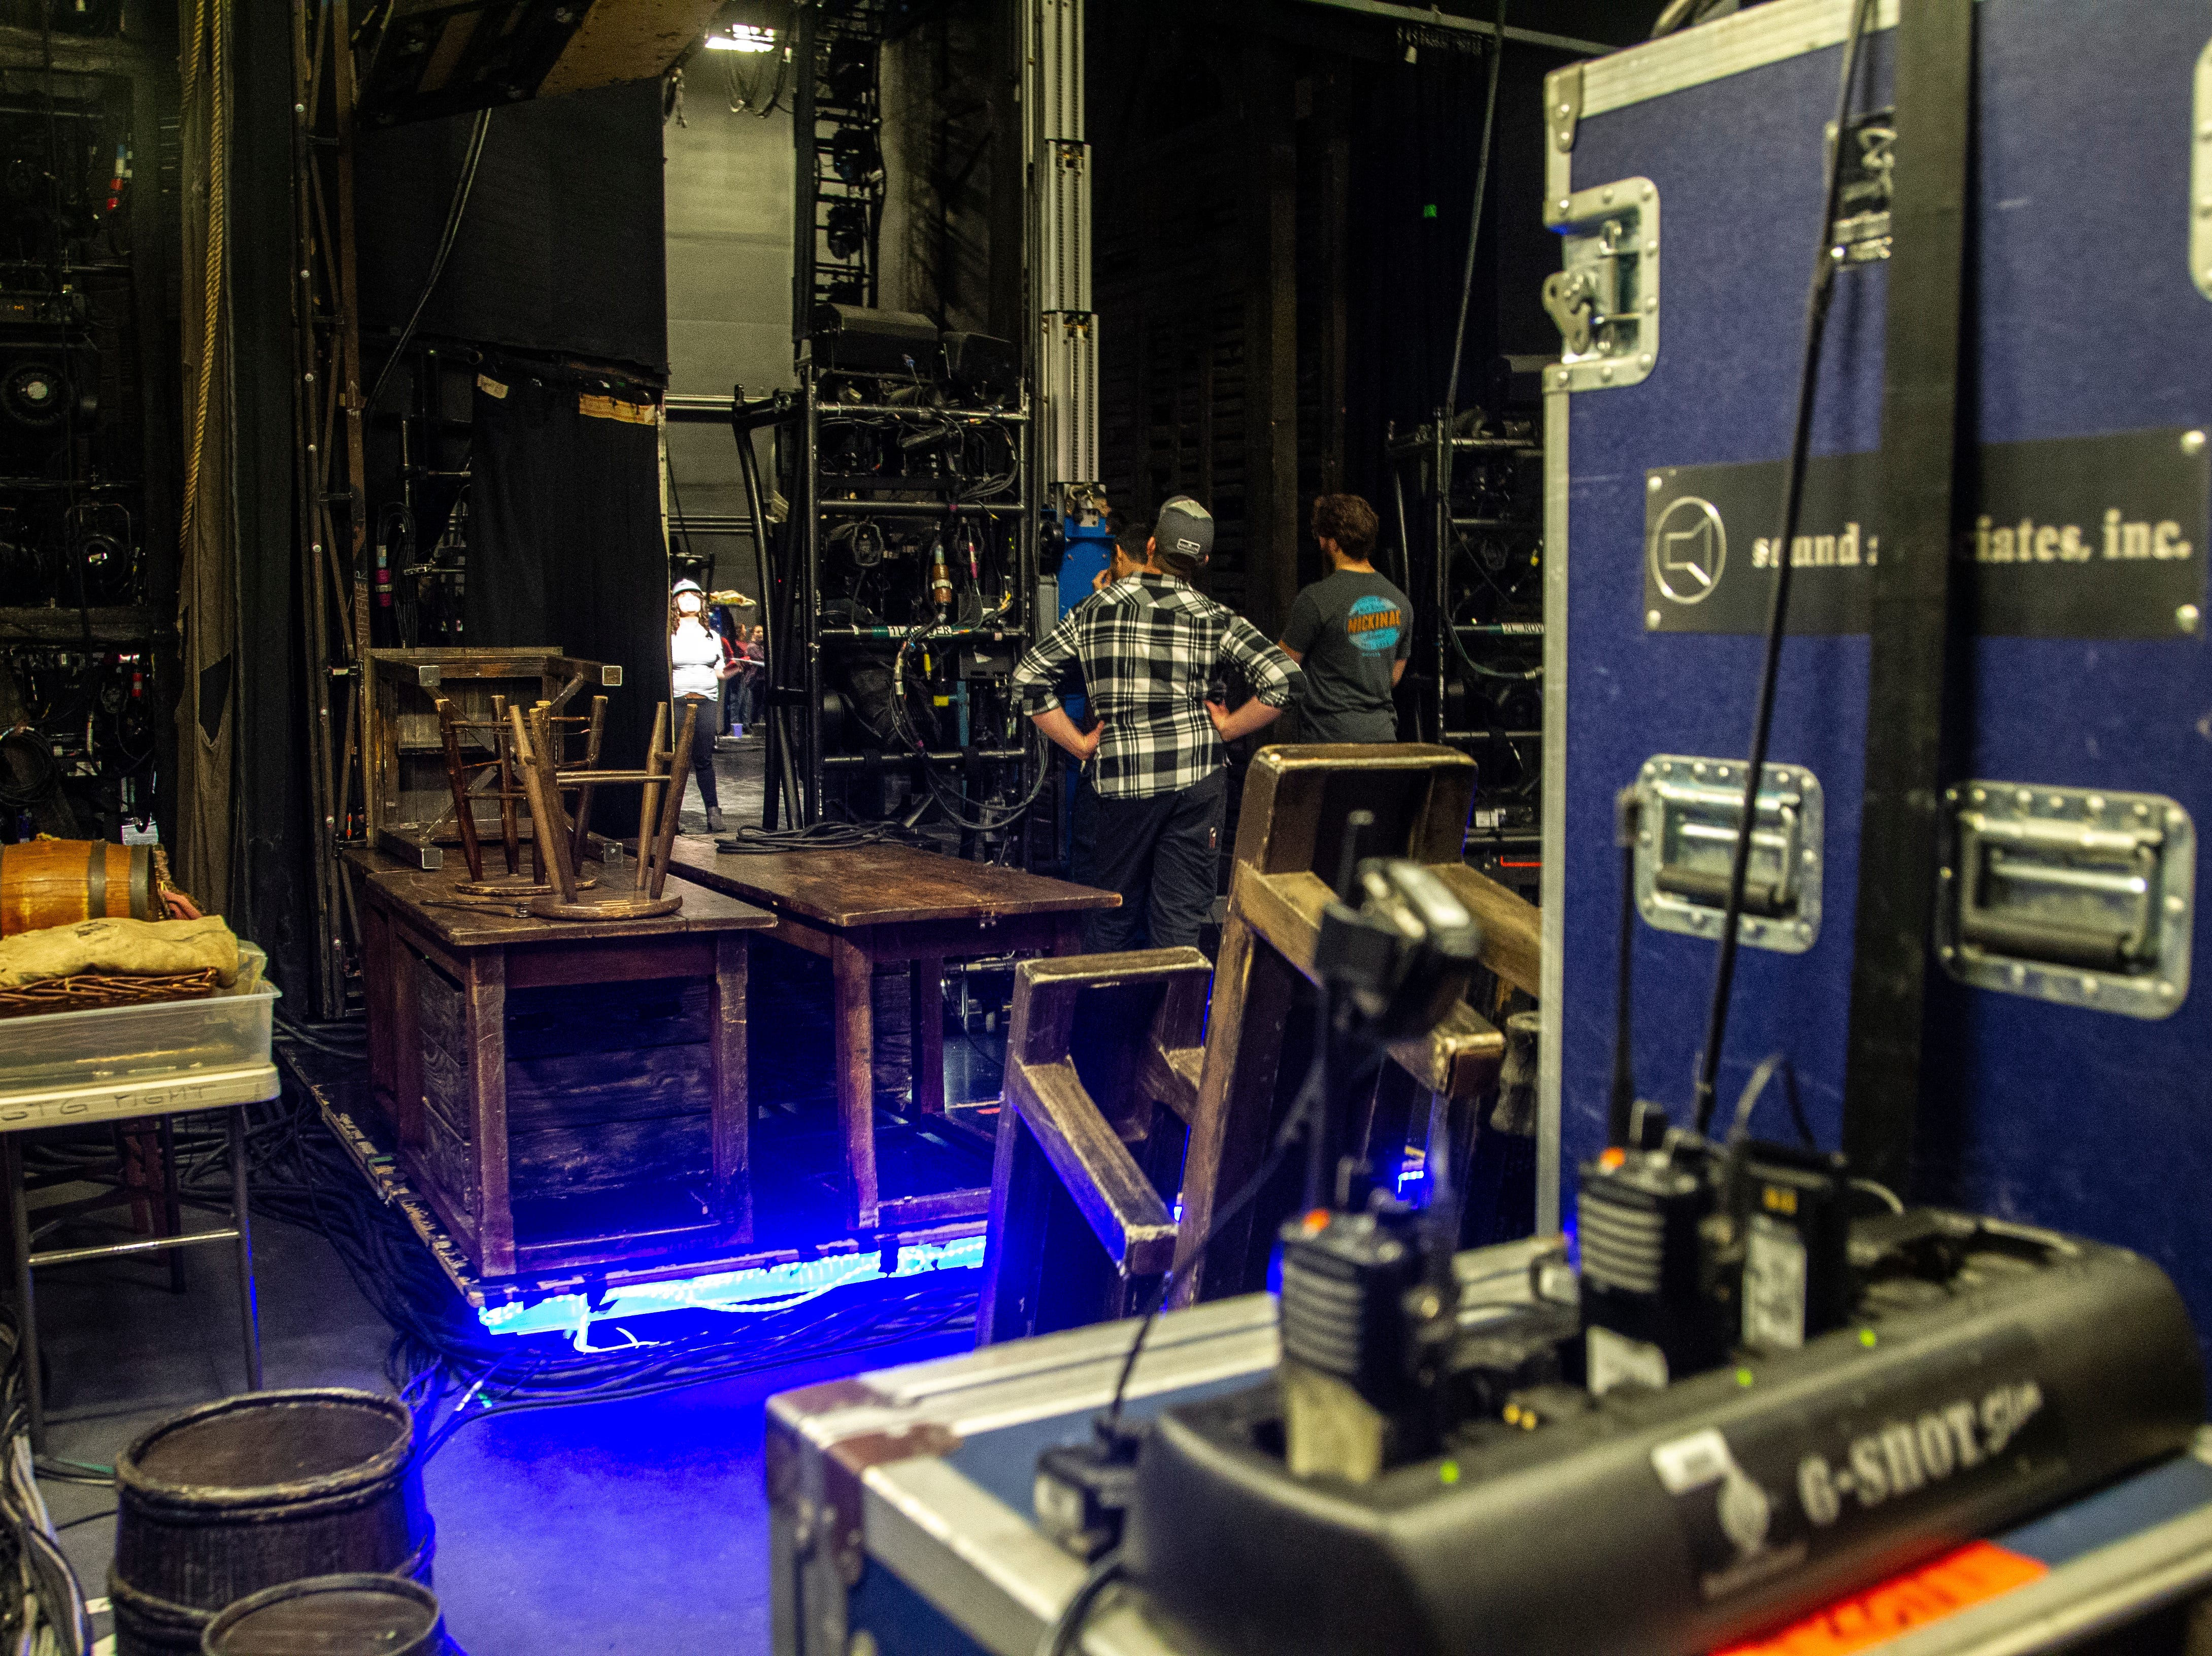 Members of the Les Misérables crew set up before its opening show on Tuesday, Dec. 4, 2018, at Hancher Auditorium on the University of Iowa campus in Iowa City.